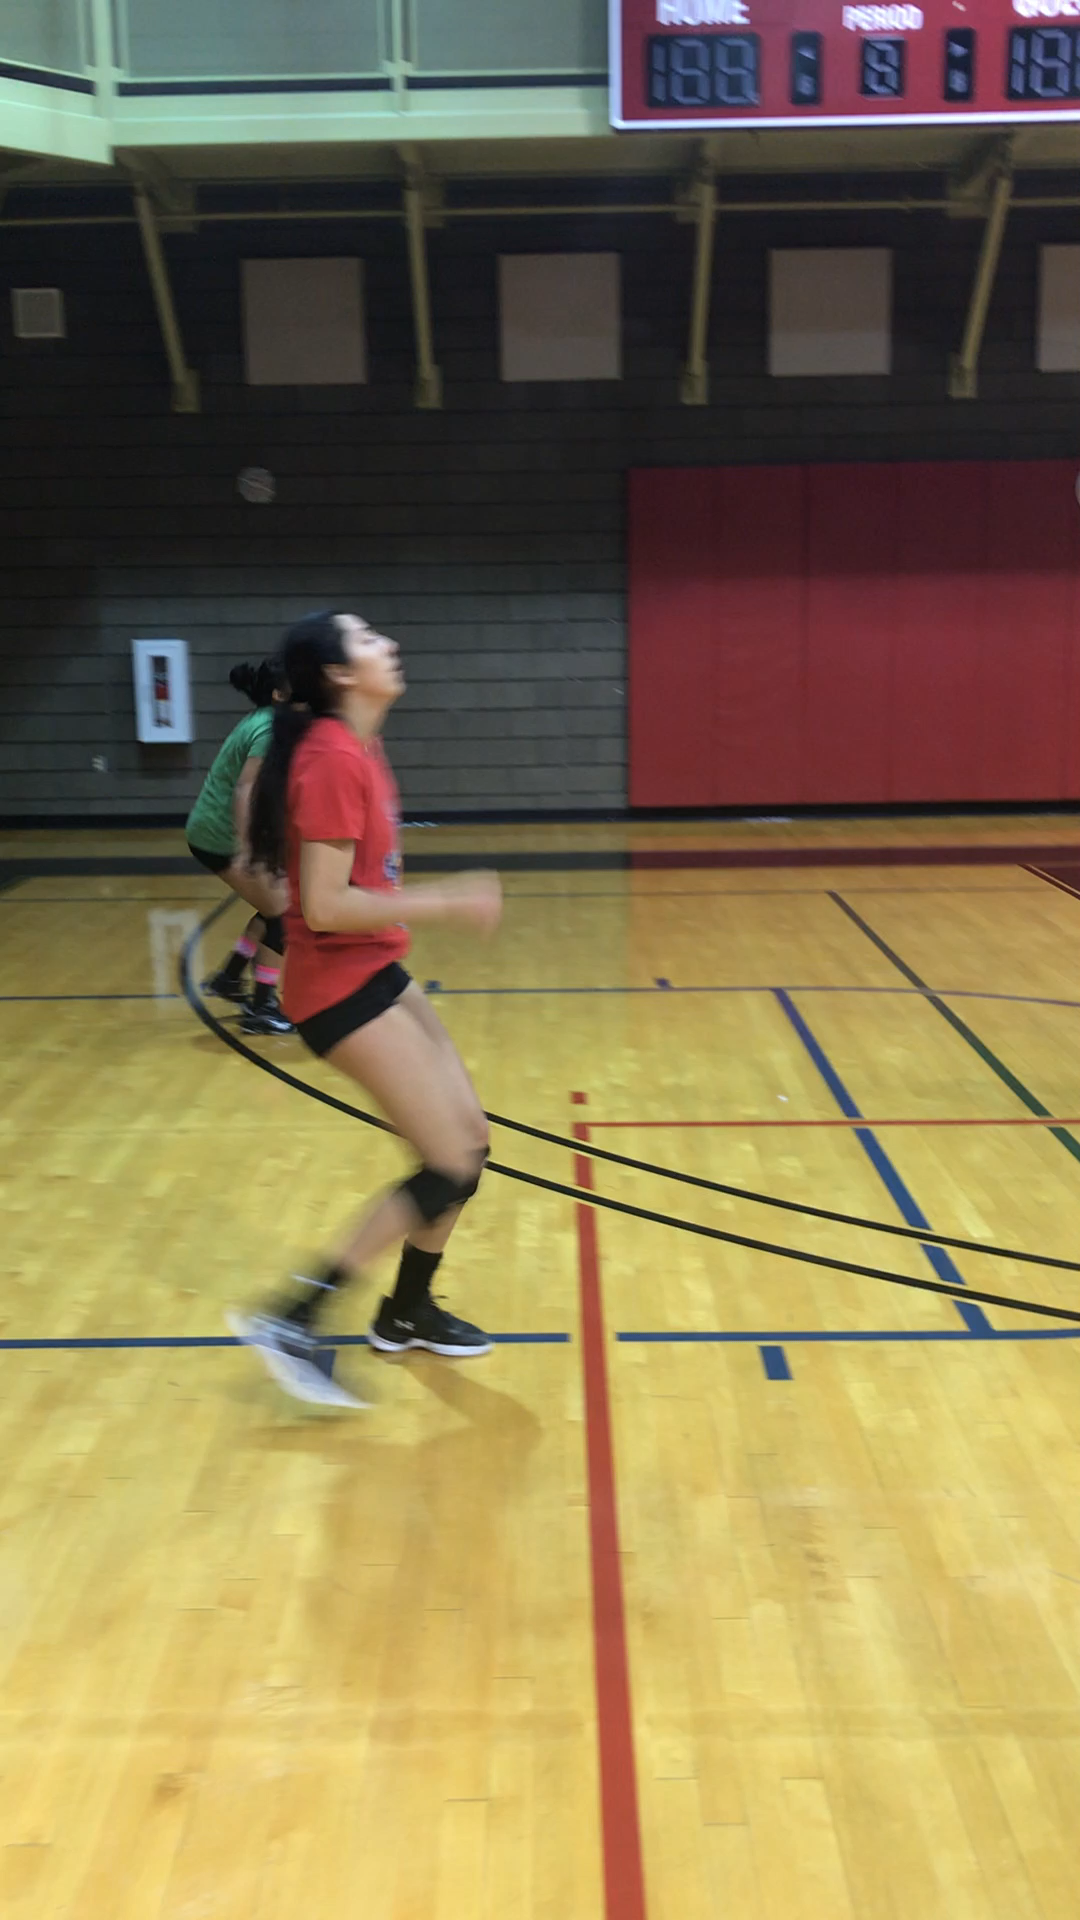 2 Volleyball Passing Drills How To Get Better At Passing In Volleyball Video Video Volleyball Passing Drills Volleyball Tryouts Youth Volleyball